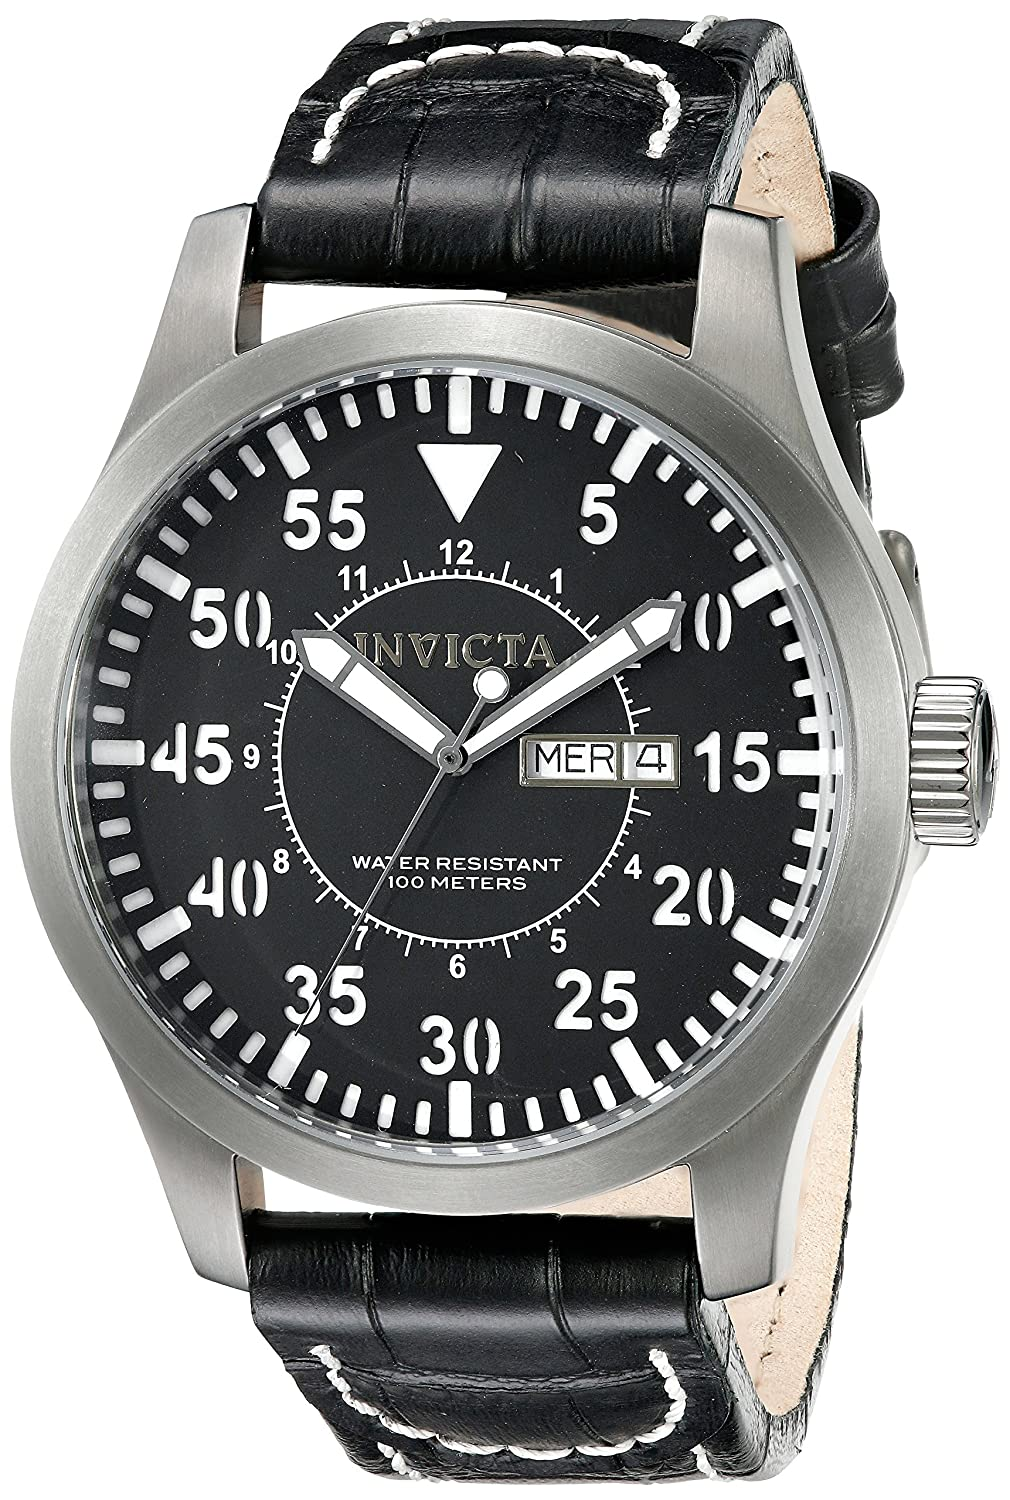 Amazon.com: Invicta Mens 11200 Specialty Black Dial Black Leather Watch: Invicta: Watches